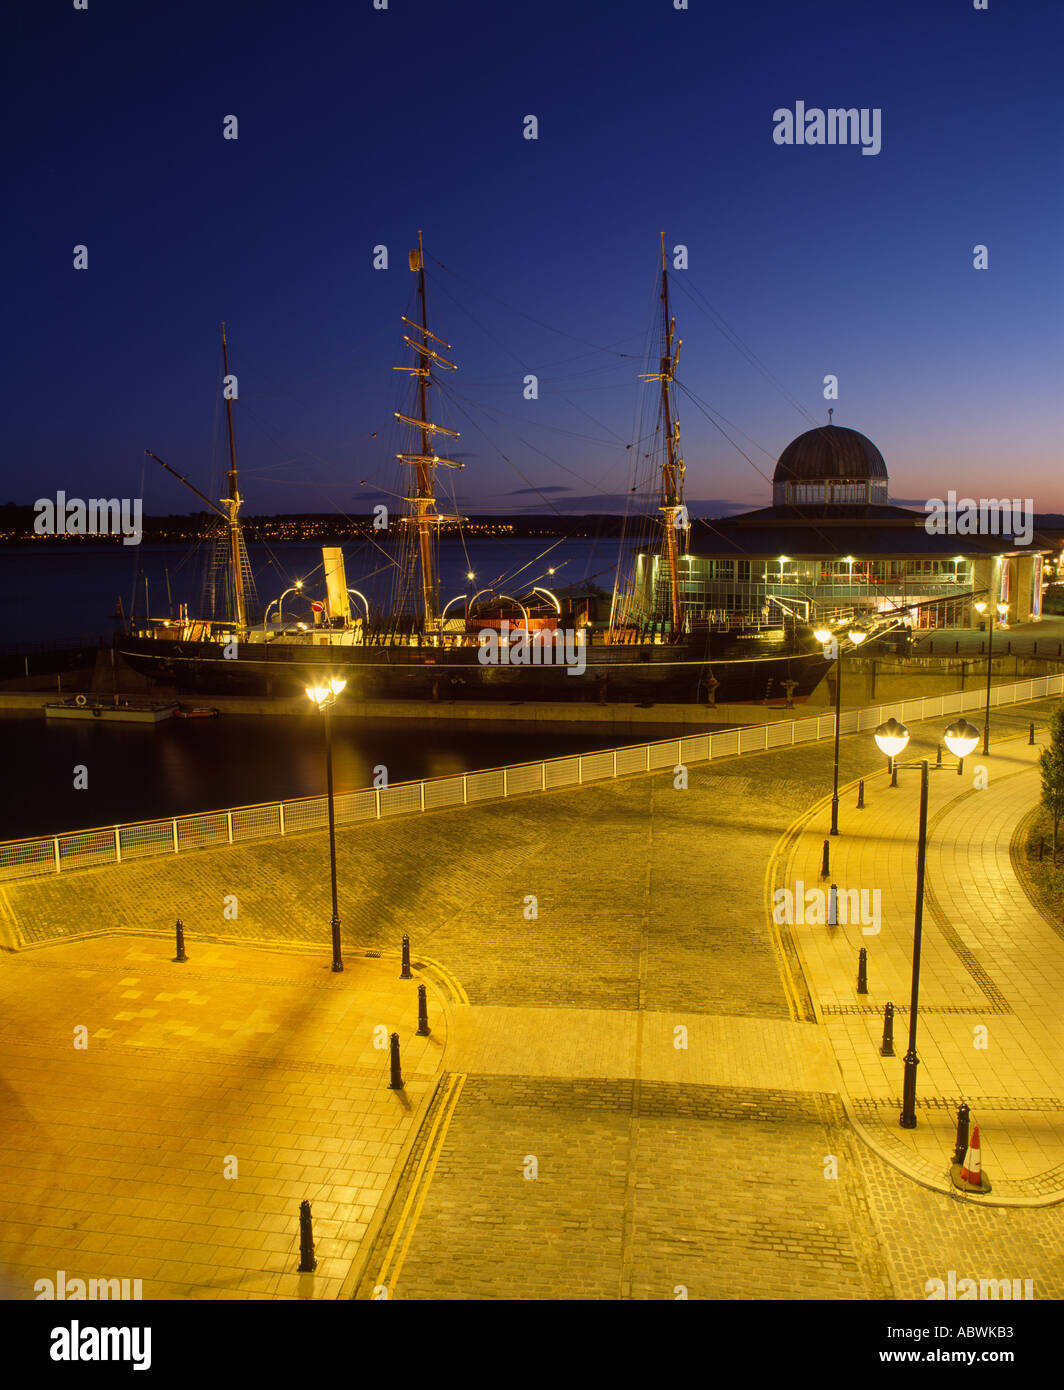 Discovery Point, Discovery Quay, Dundee City, Scotland, UK. The Royal Research Ship the RRS Discovery - Stock Image